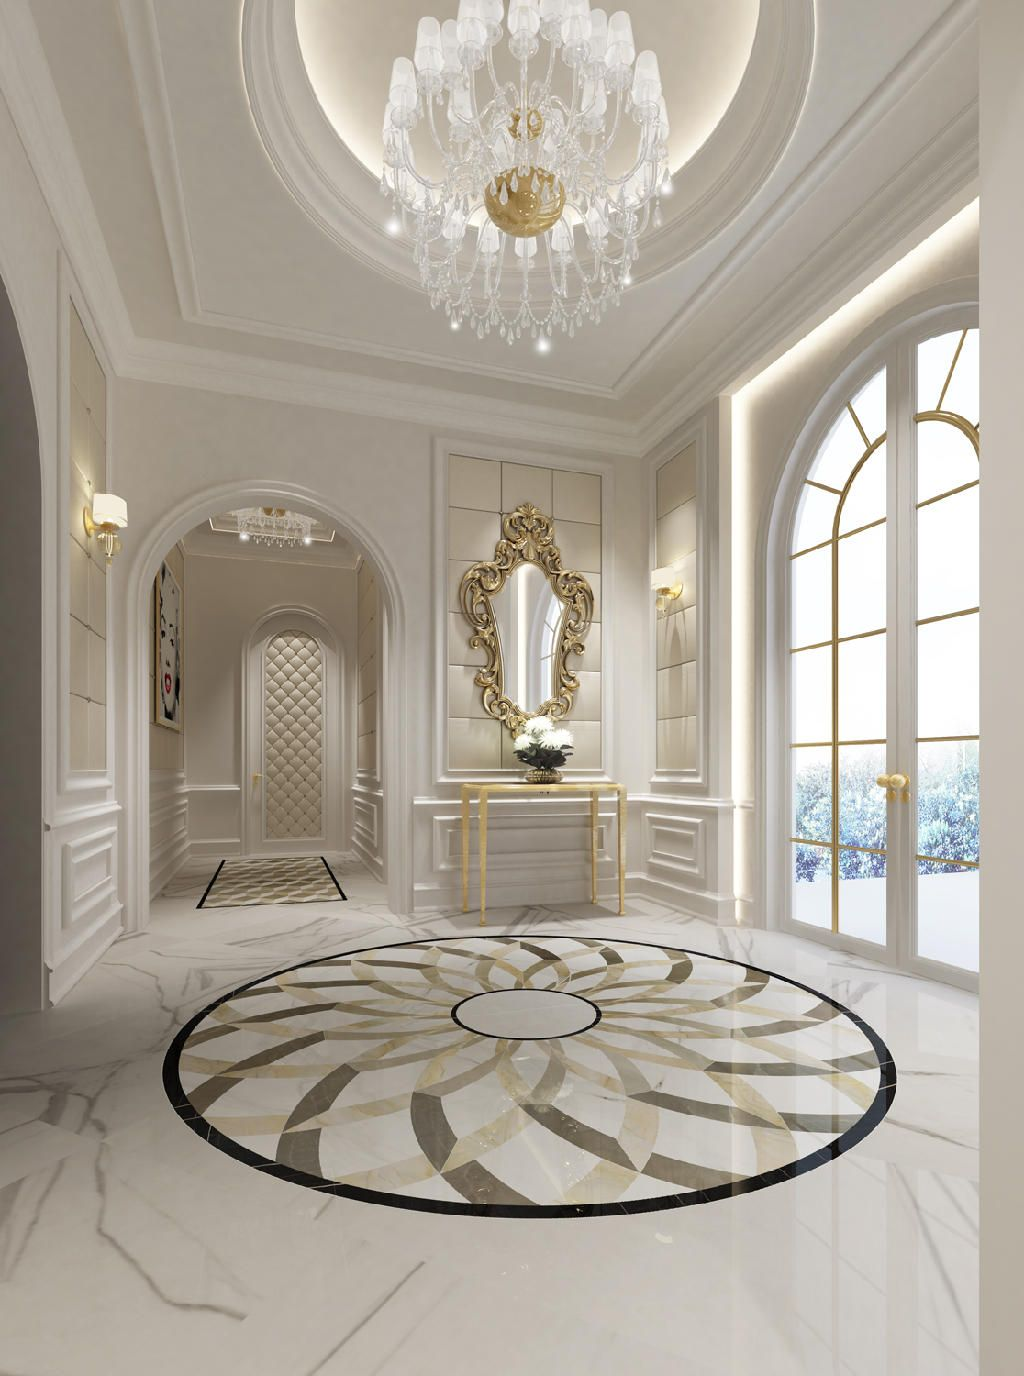 Lobby abu dhabi rugs floors pinterest abu dhabi lobbies and interiors Grand home furniture dubai